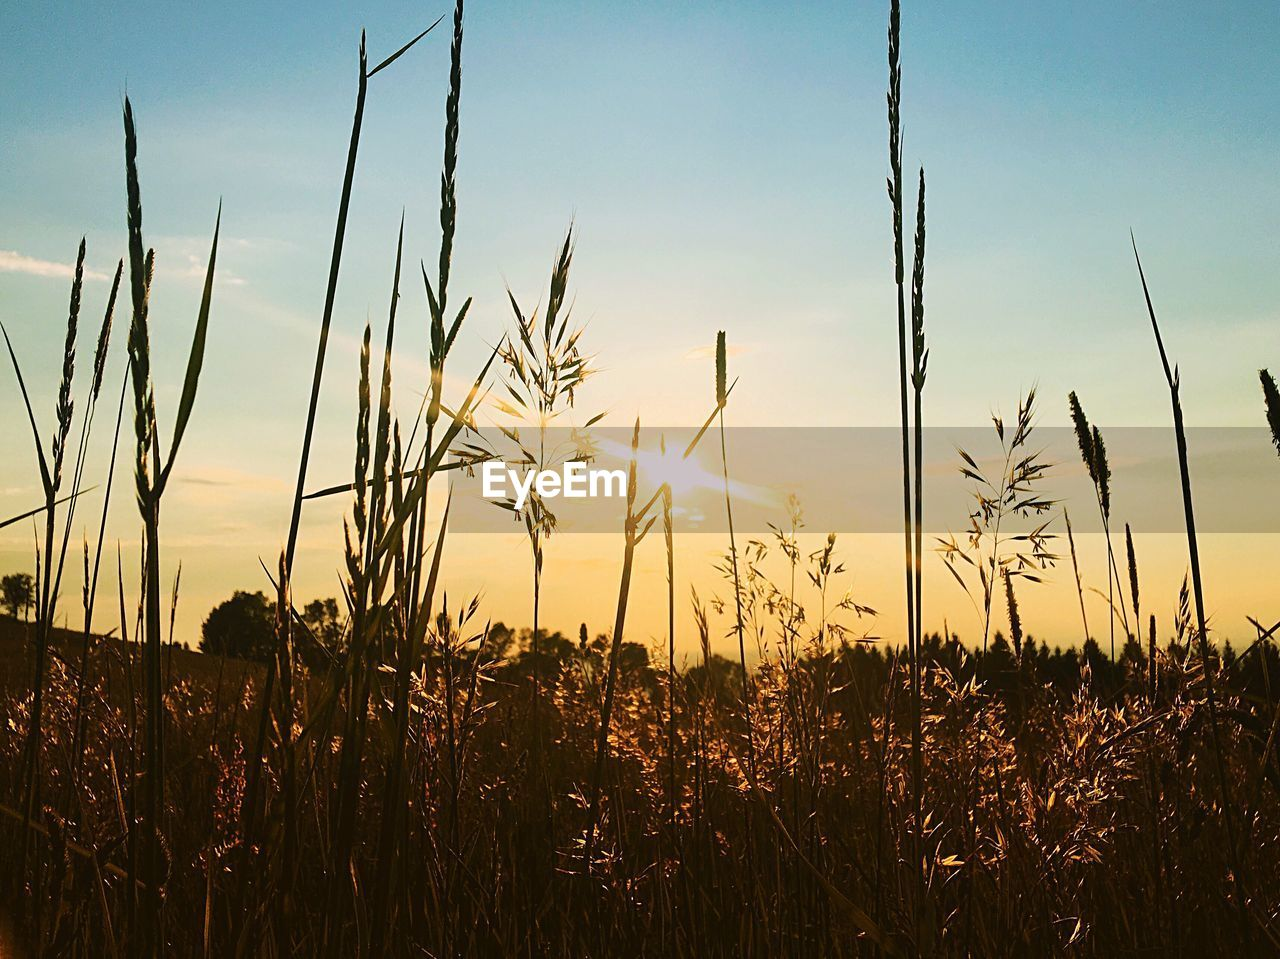 sky, growth, plant, field, tranquility, sunset, beauty in nature, land, landscape, nature, agriculture, tranquil scene, sunlight, rural scene, crop, scenics - nature, no people, sun, farm, environment, outdoors, lens flare, stalk, timothy grass